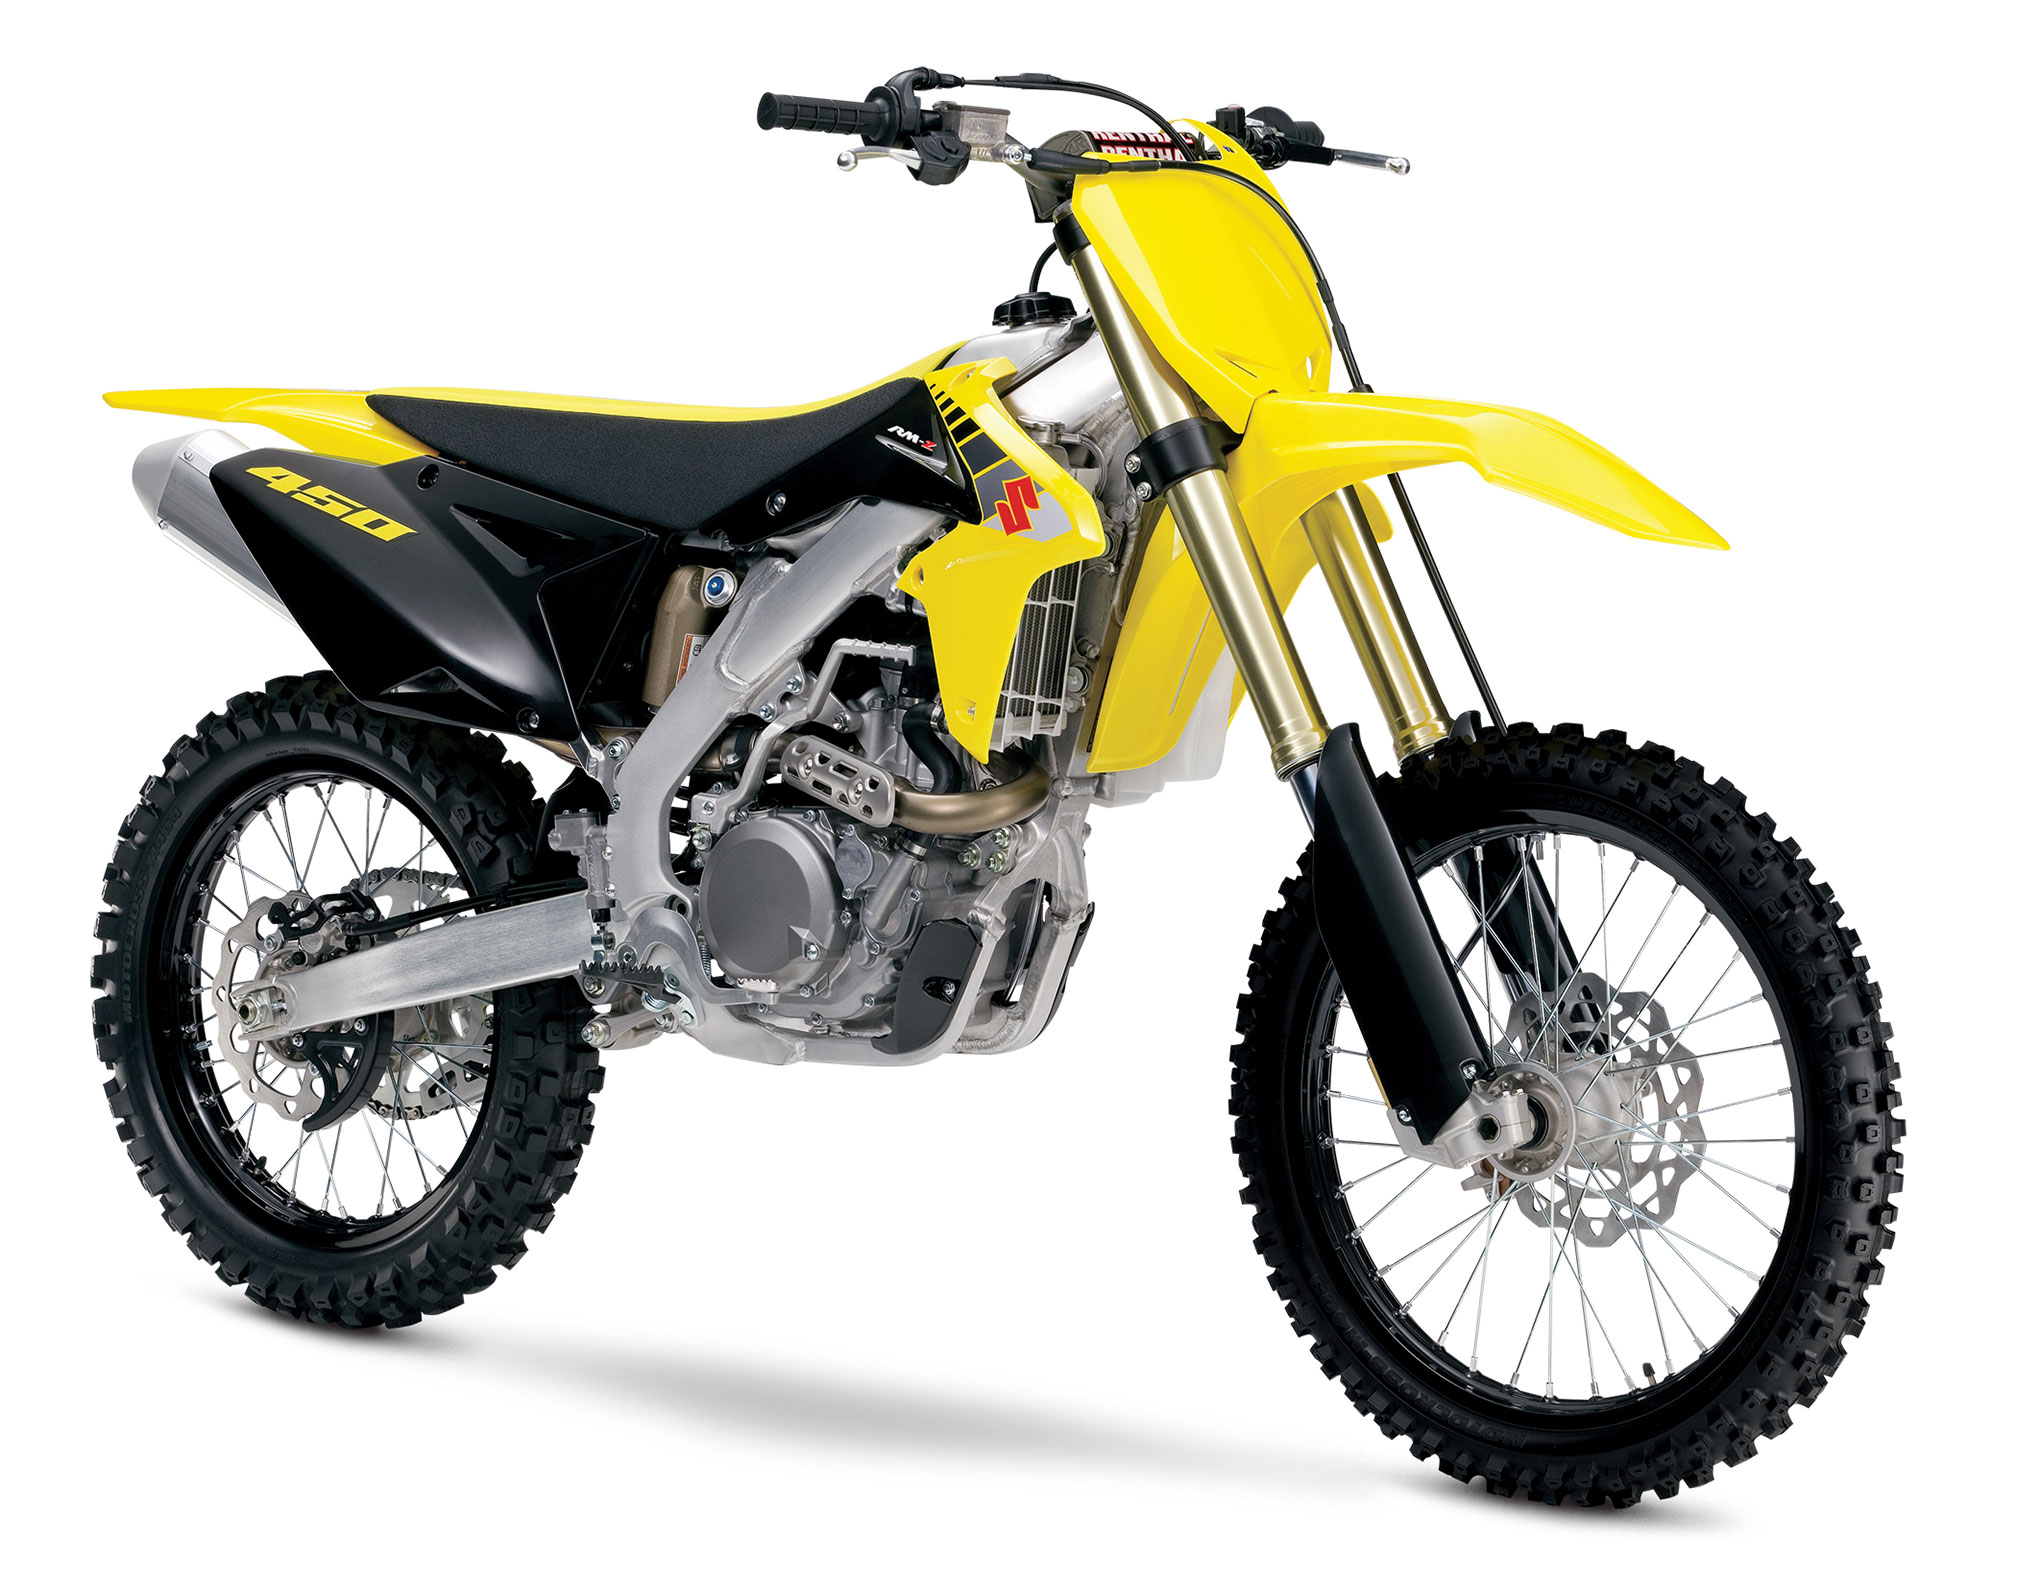 2017 suzuki rm z450 review. Black Bedroom Furniture Sets. Home Design Ideas